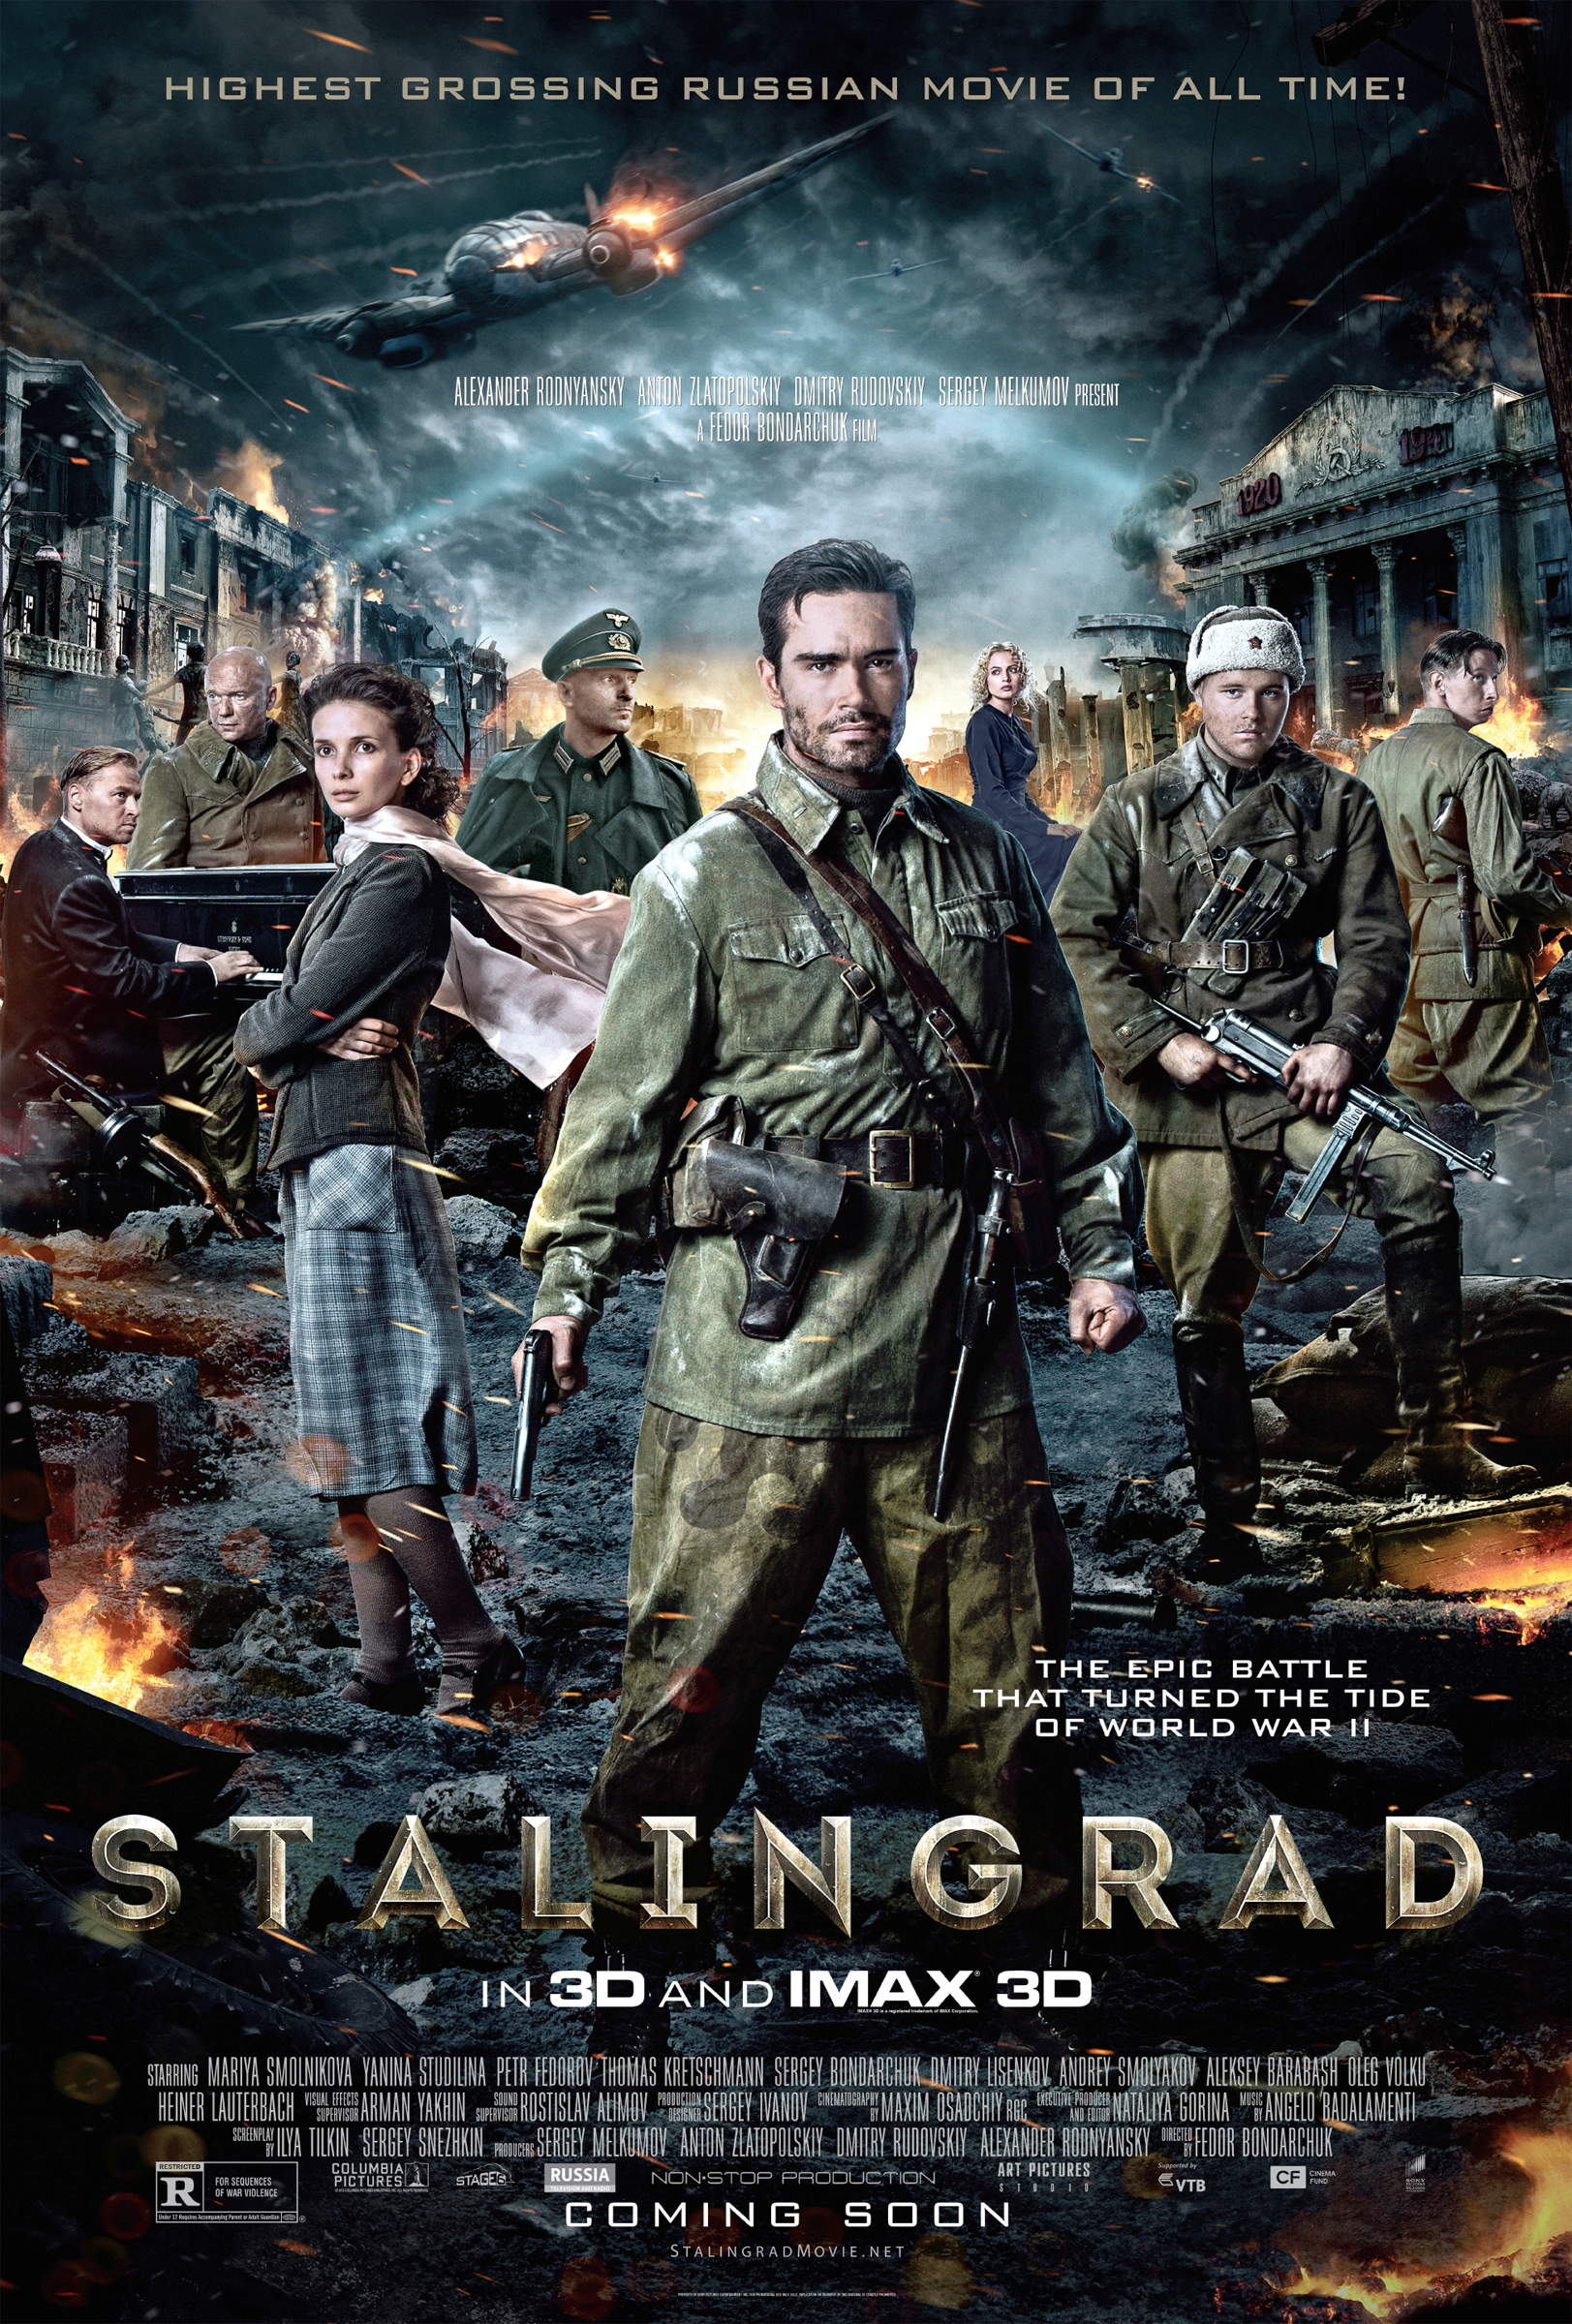 Movie Review: 'Stalingrad' Doesn't Live Up to it's Brutal History